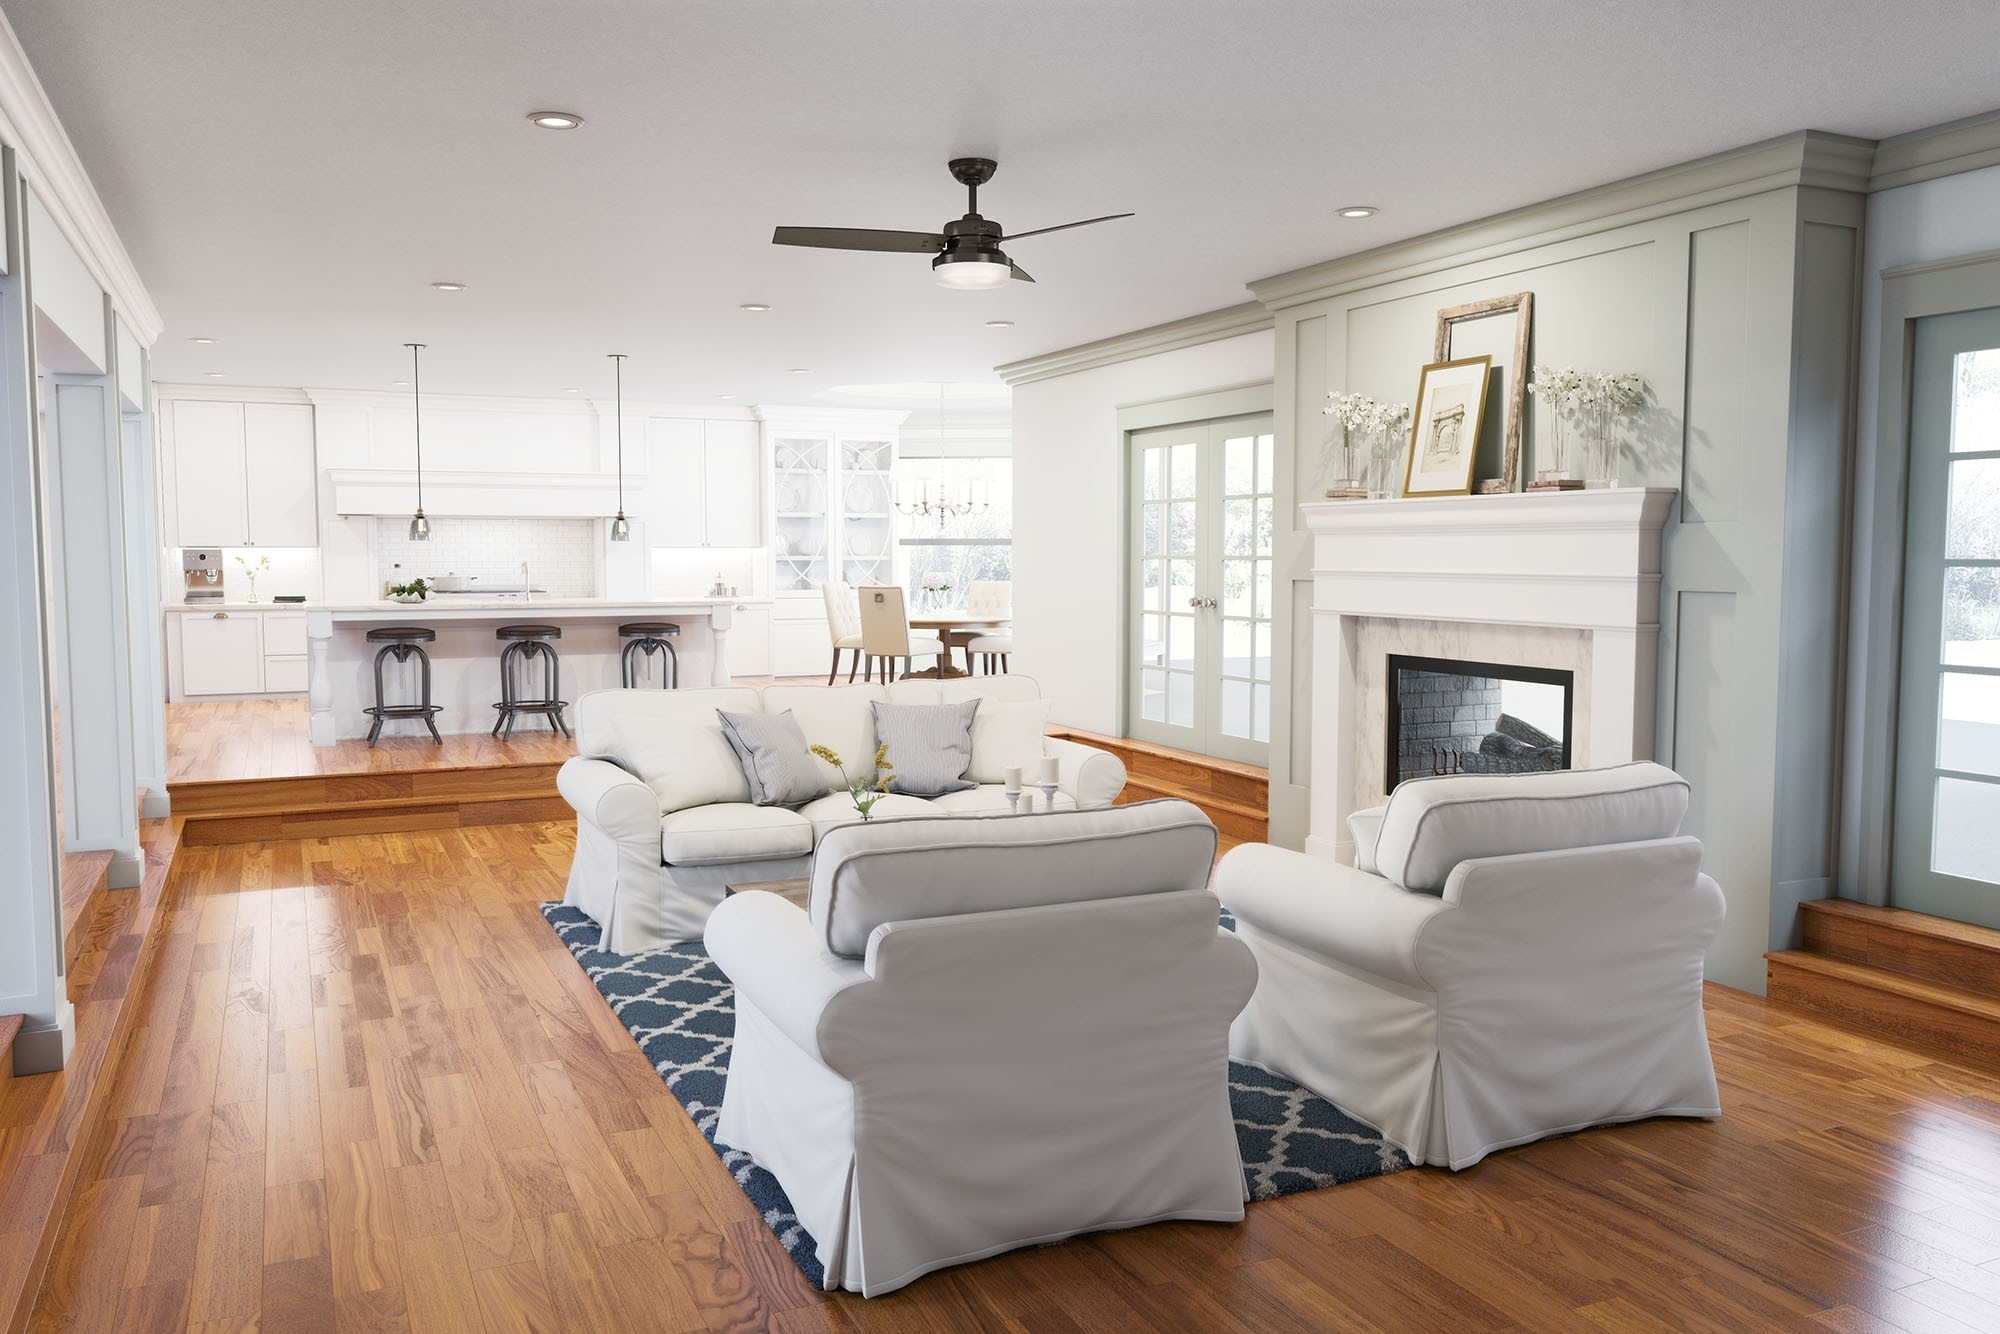 Joanna Gaines Outdoor Ceiling Fans Throughout Current How To Achieve Farmhouse Style In Your Home – Hunter Fan Blog (View 10 of 20)